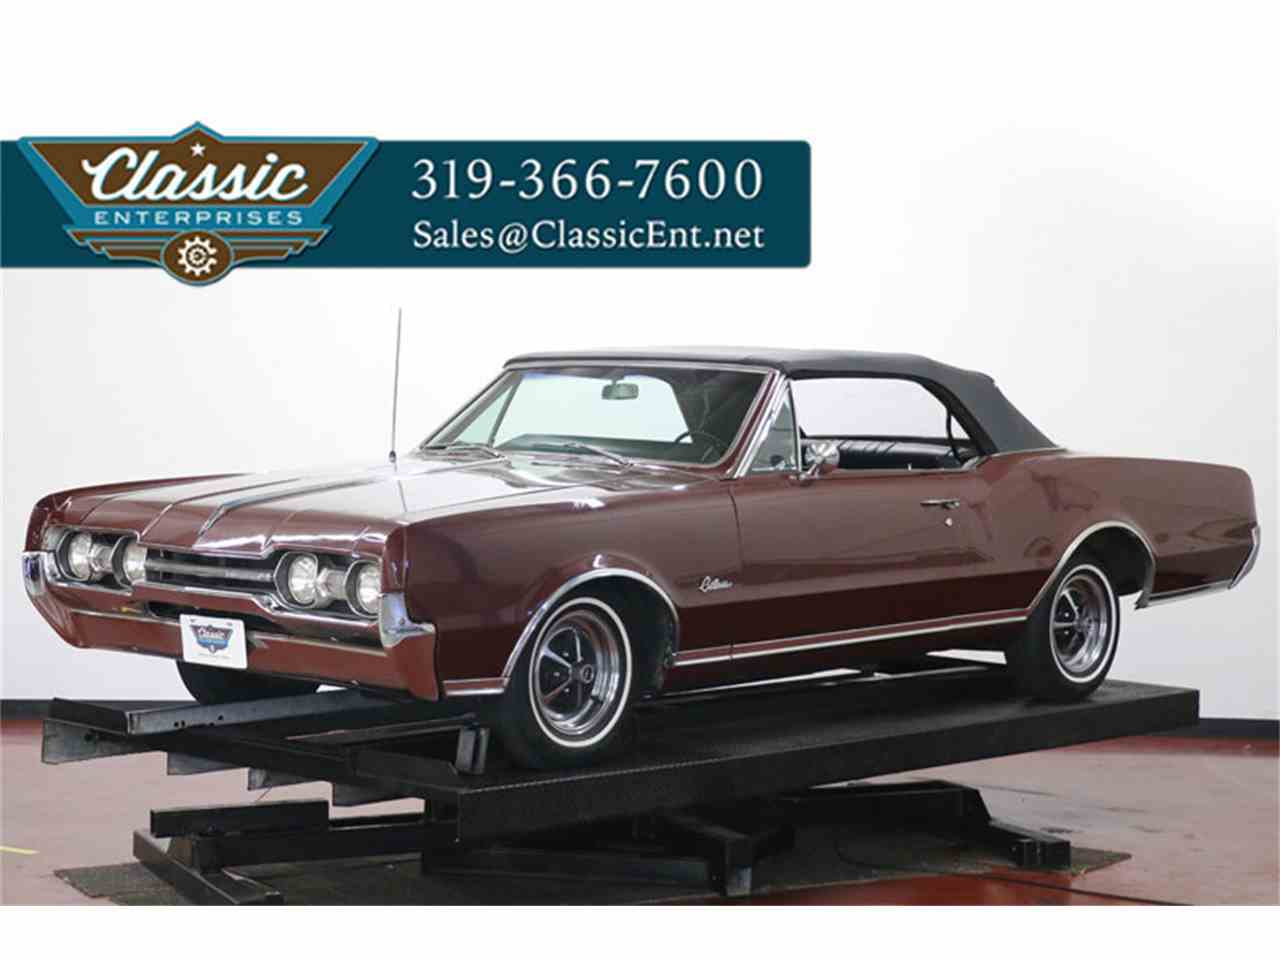 1966 to 1968 Oldsmobile Cutlass Supreme for Sale on ClassicCars